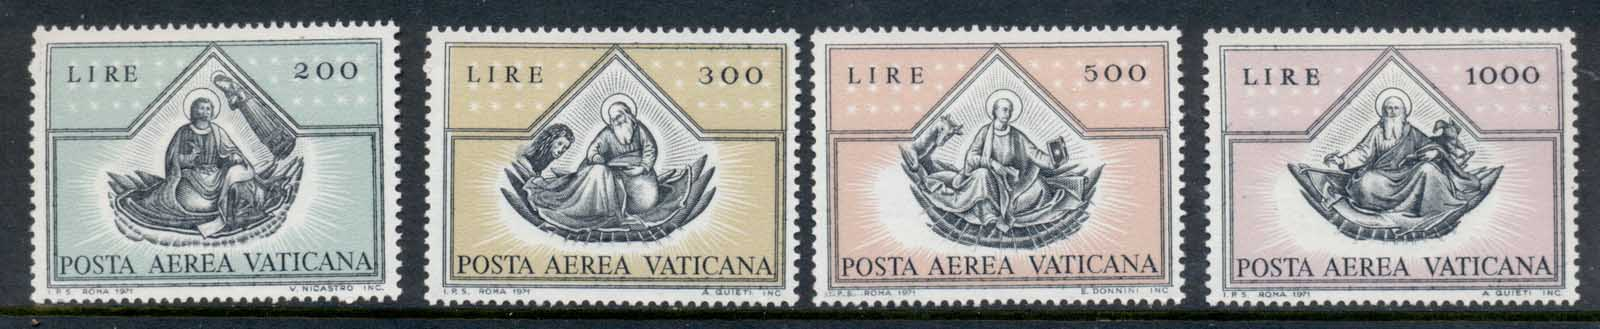 Vatican 1971 Ar Mail MLH